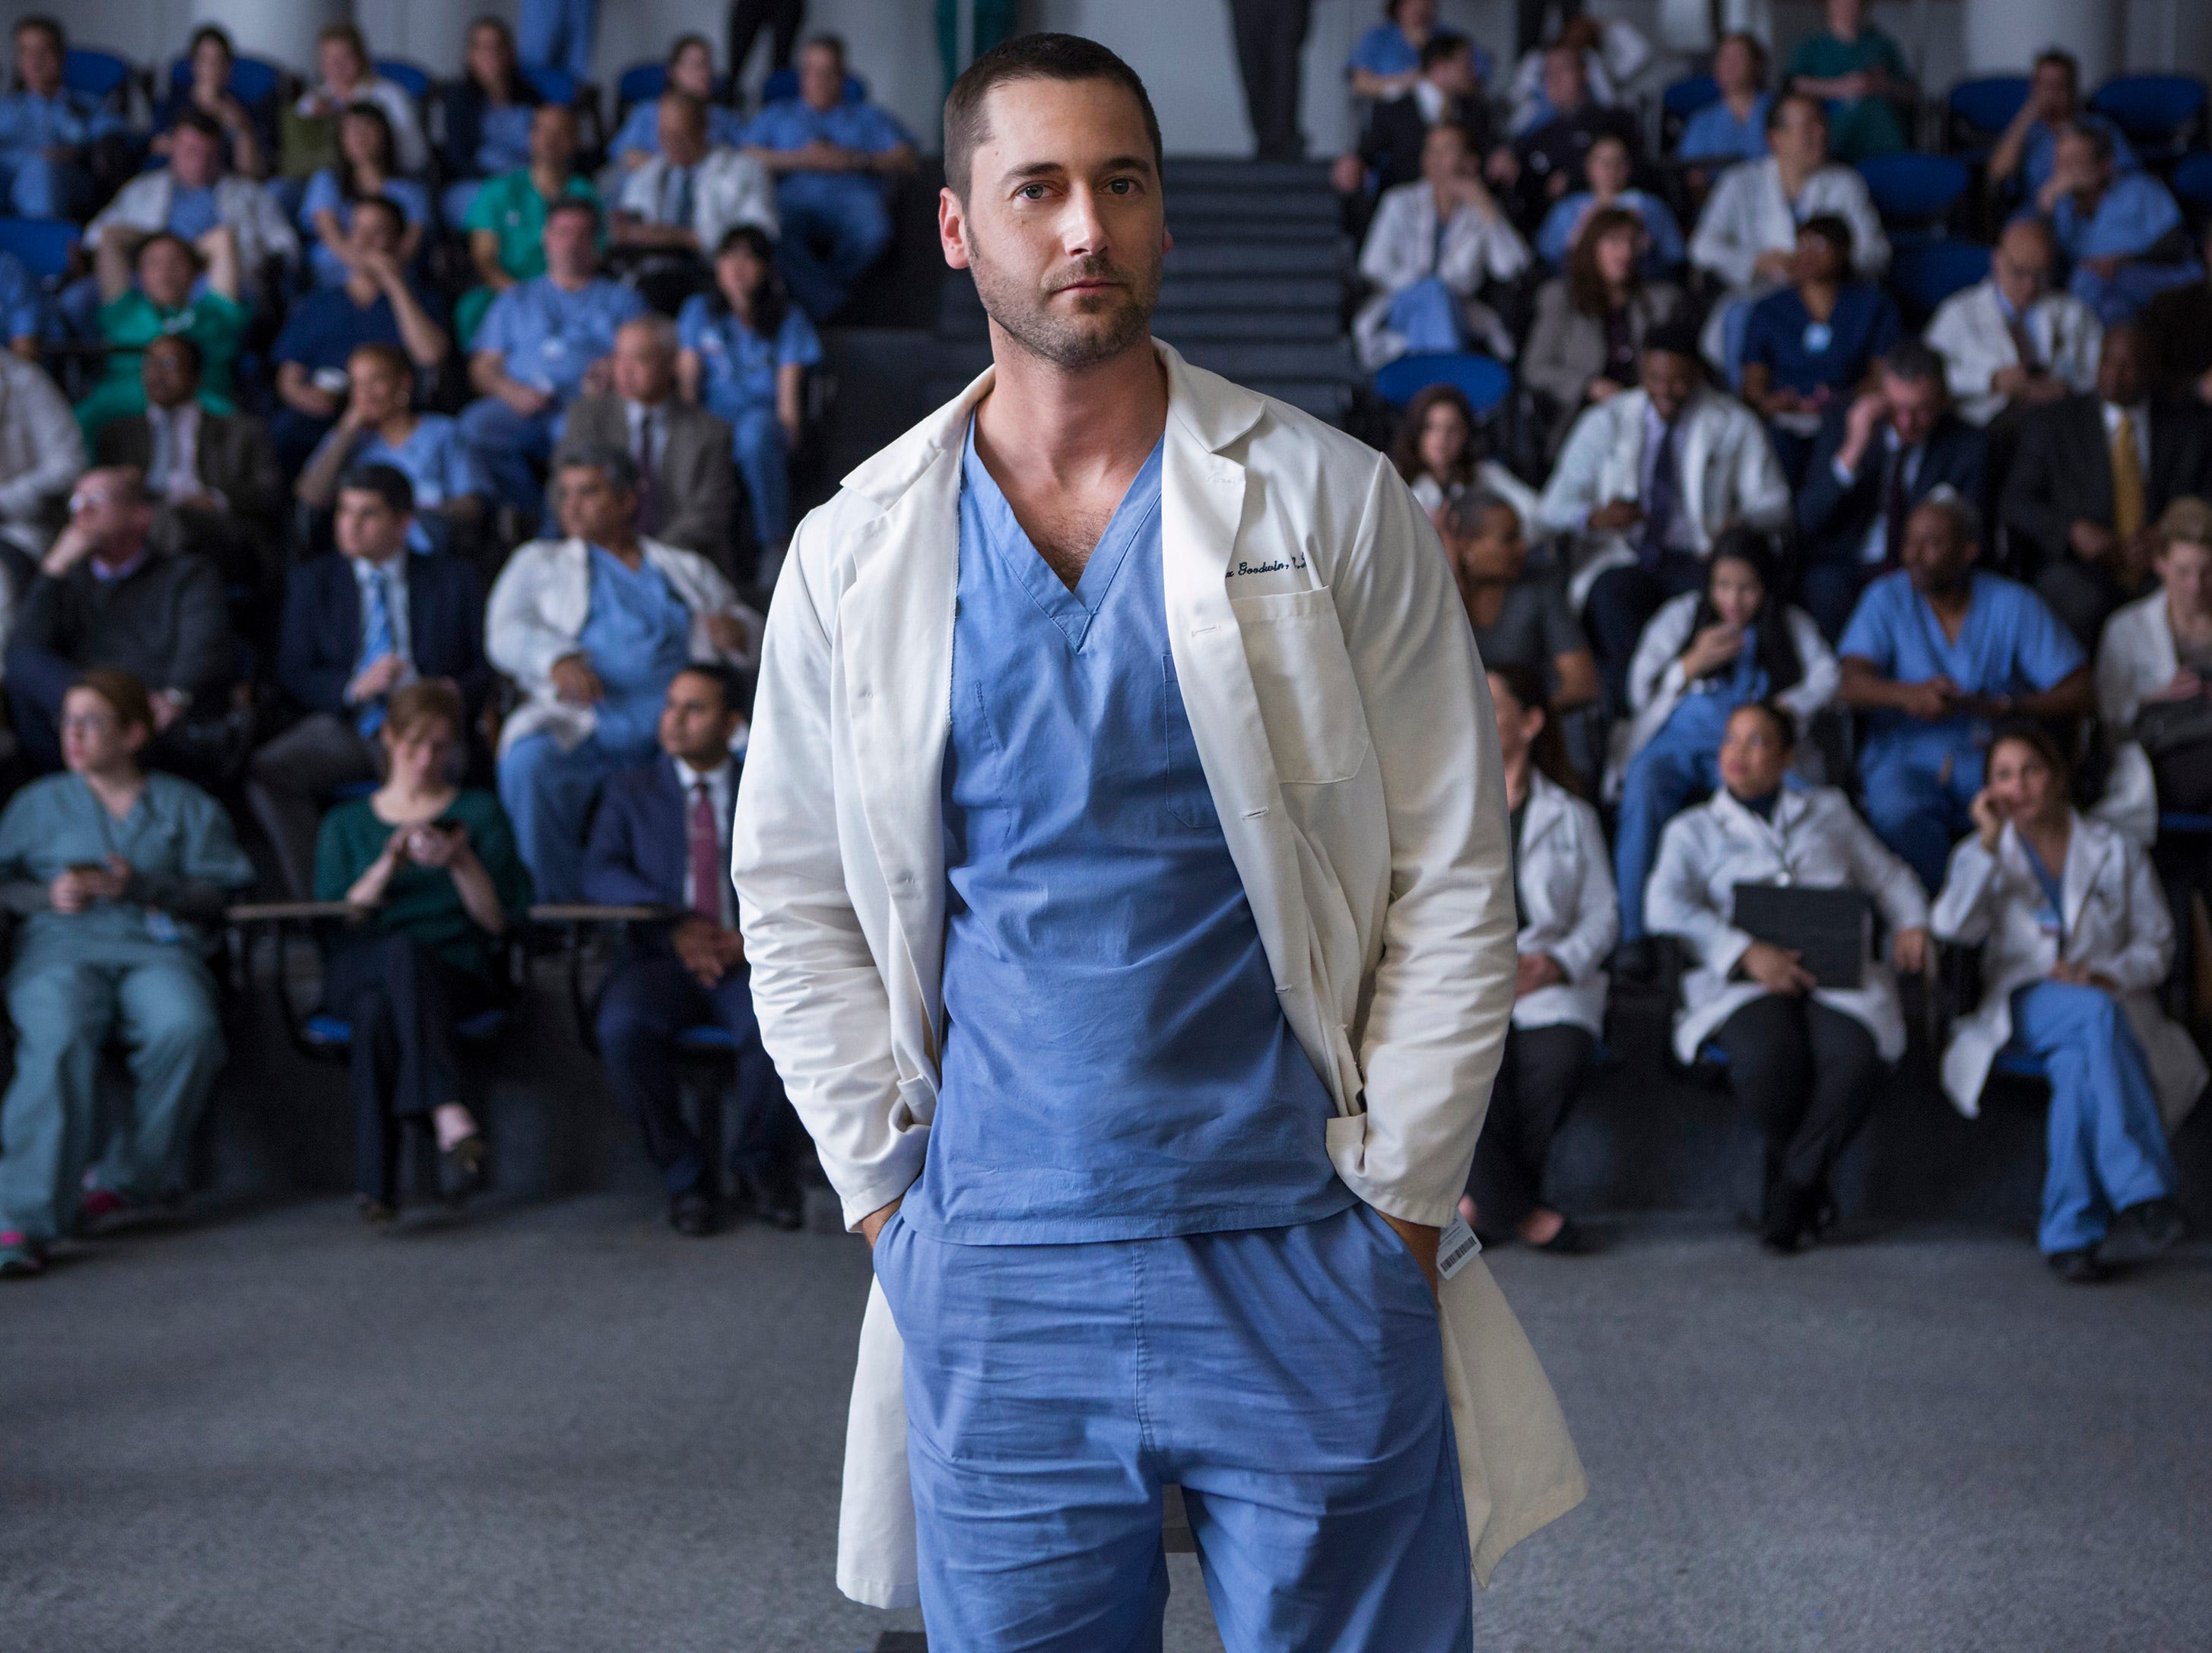 Review: NBC's medical drama 'New Amsterdam' is dead on arrival